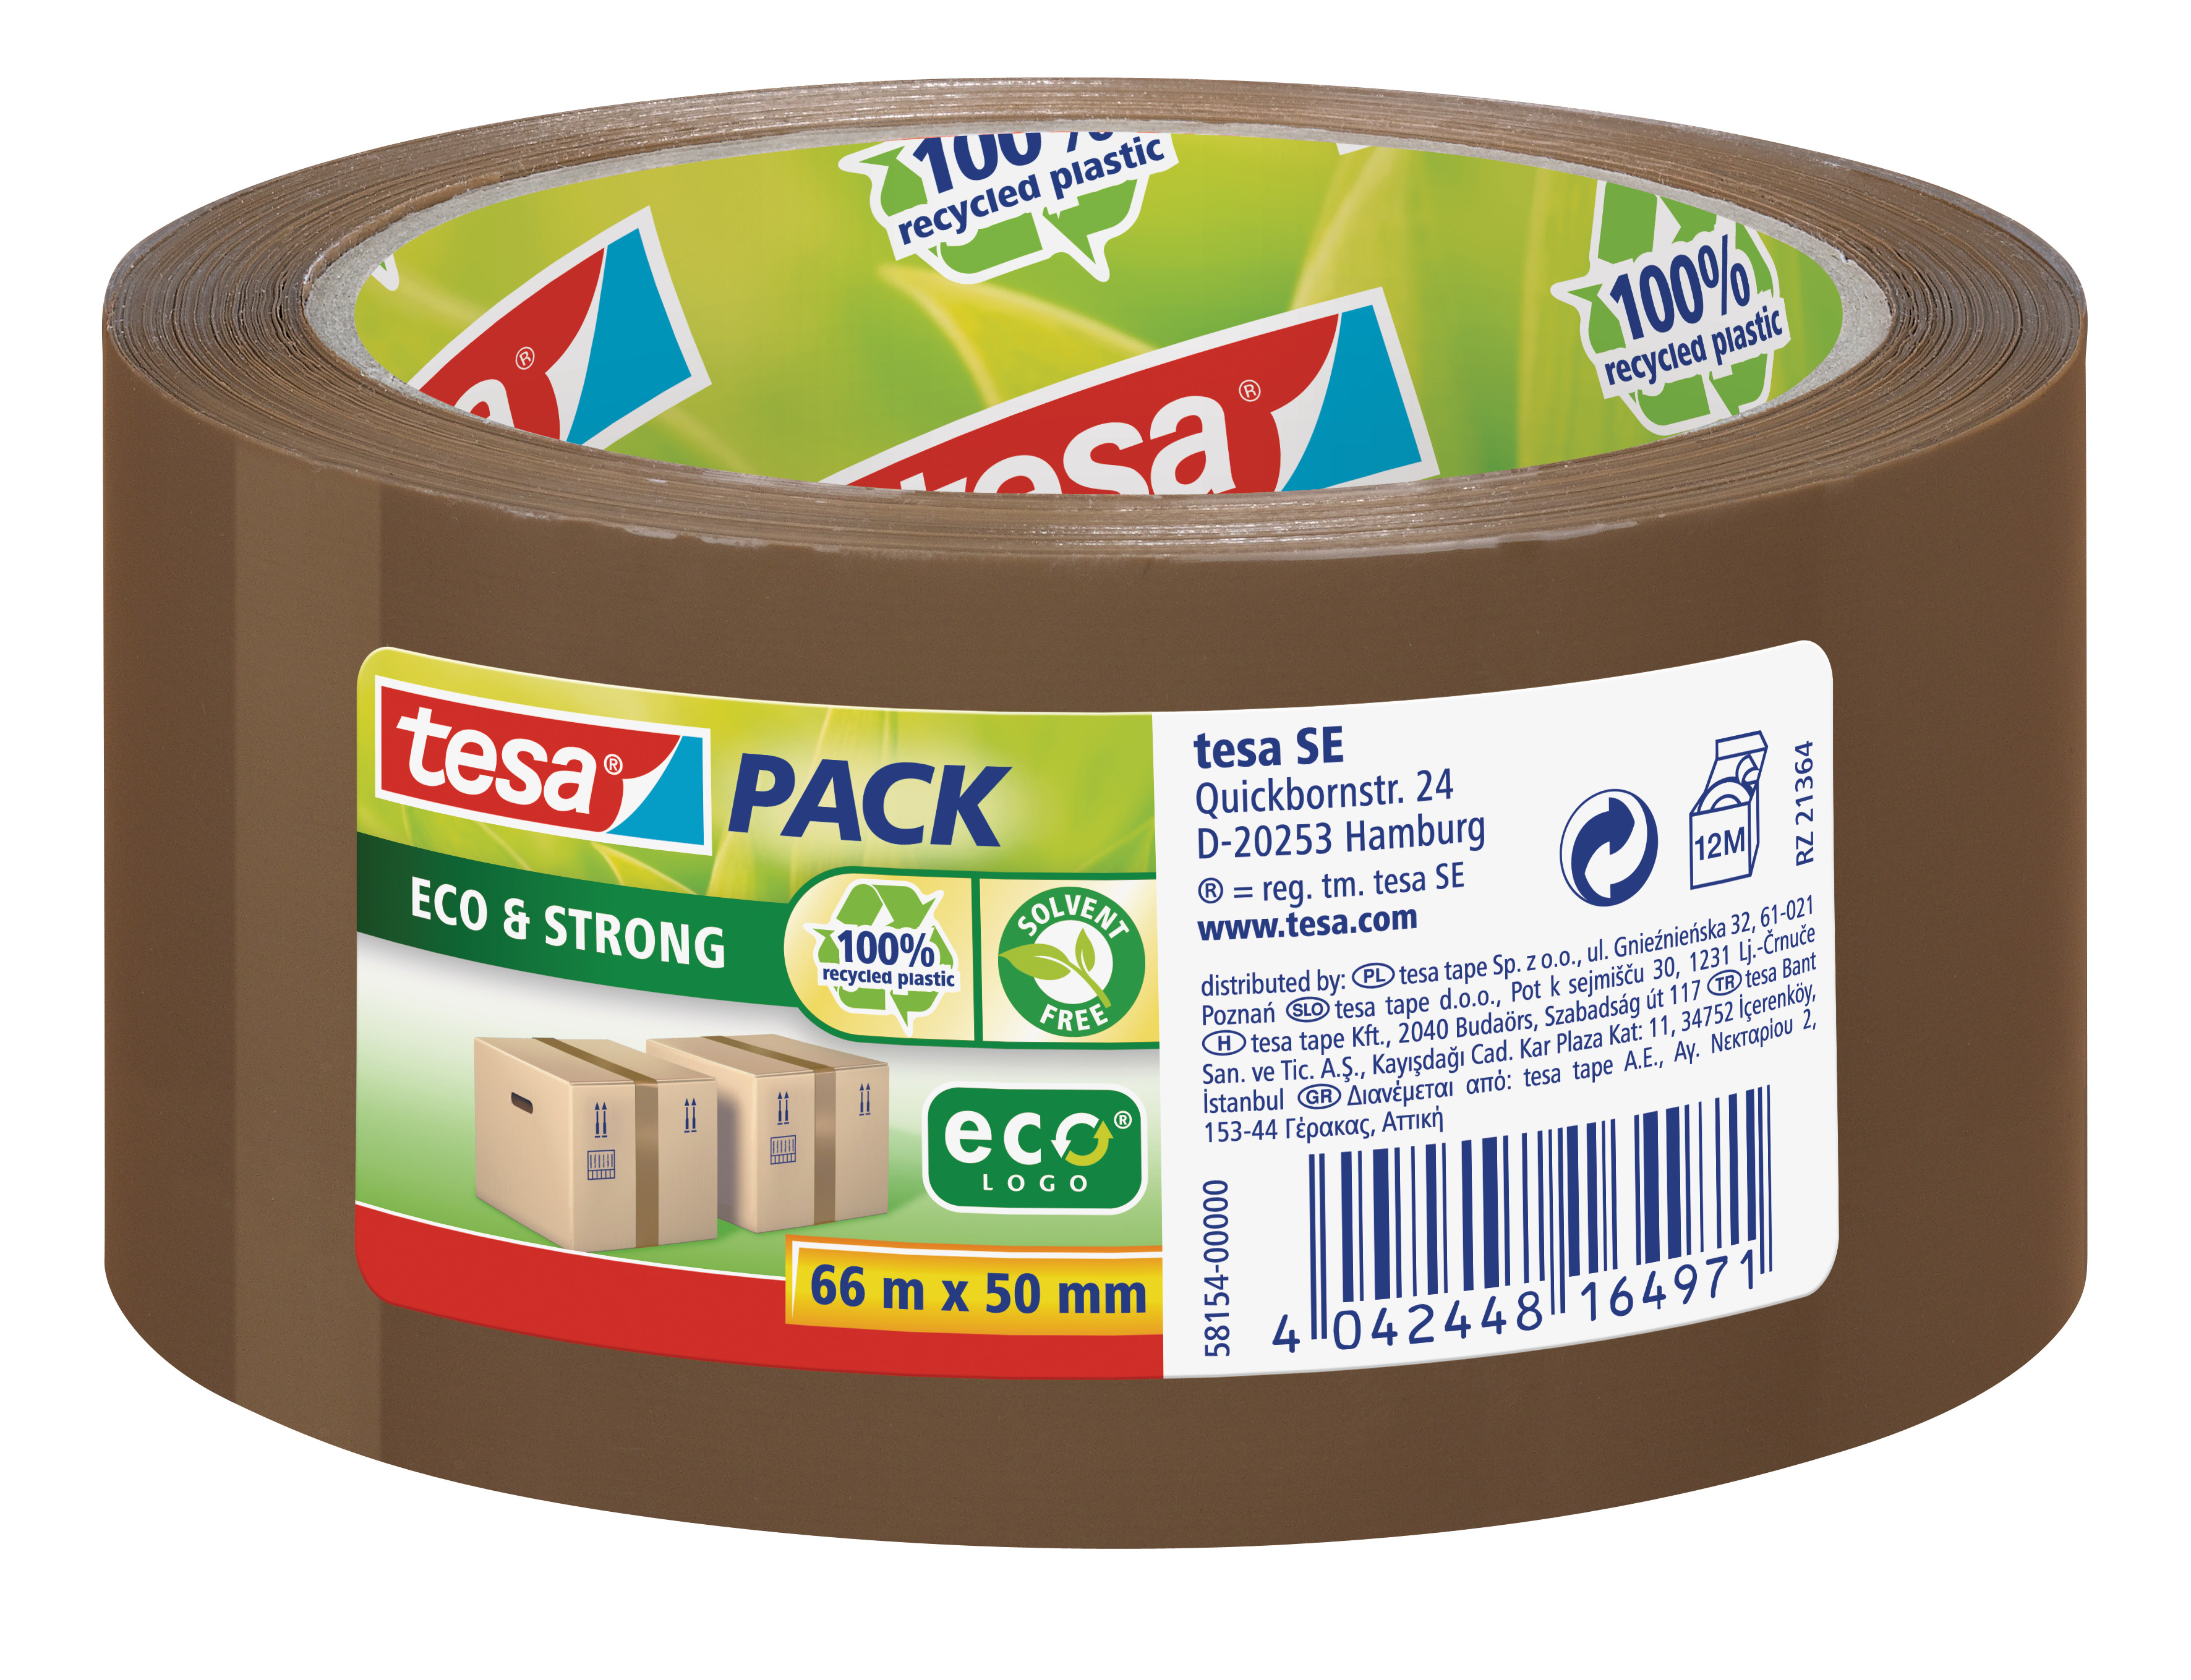 GP: 0,05 EUR/m tesa tesapack Eco & Strong 66m x 50mm braun